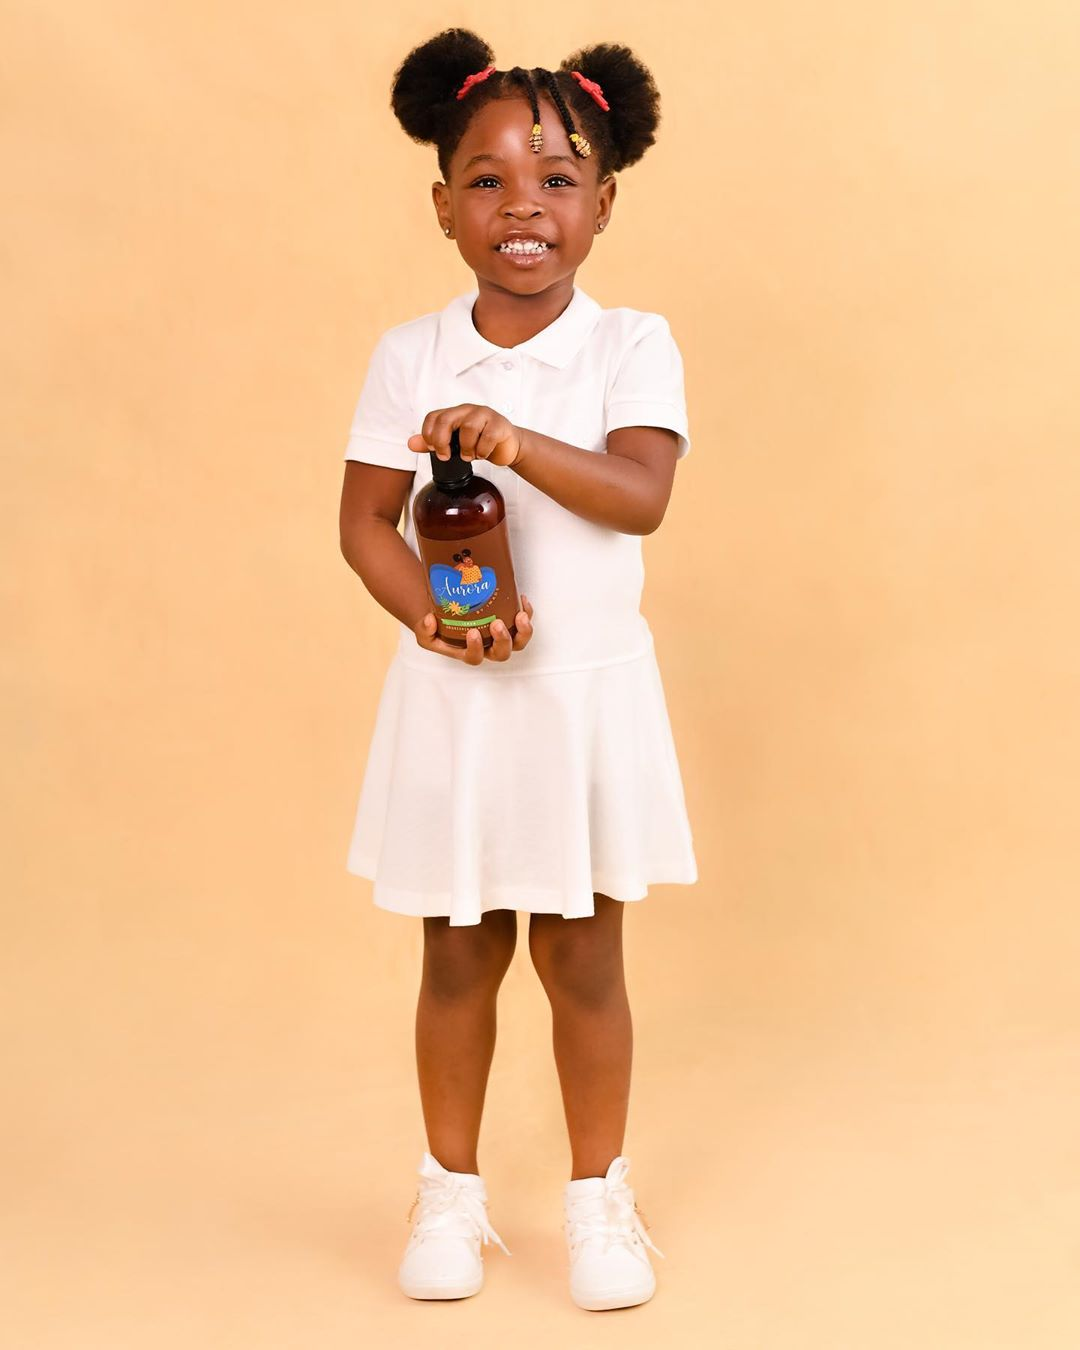 Photo of BABY BOSS; DAVIDO'S 4-YEAR OLD DAUGHTER IMADE JUST LAUNCHED AN ORGANIC HAIR CARE PRODUCT